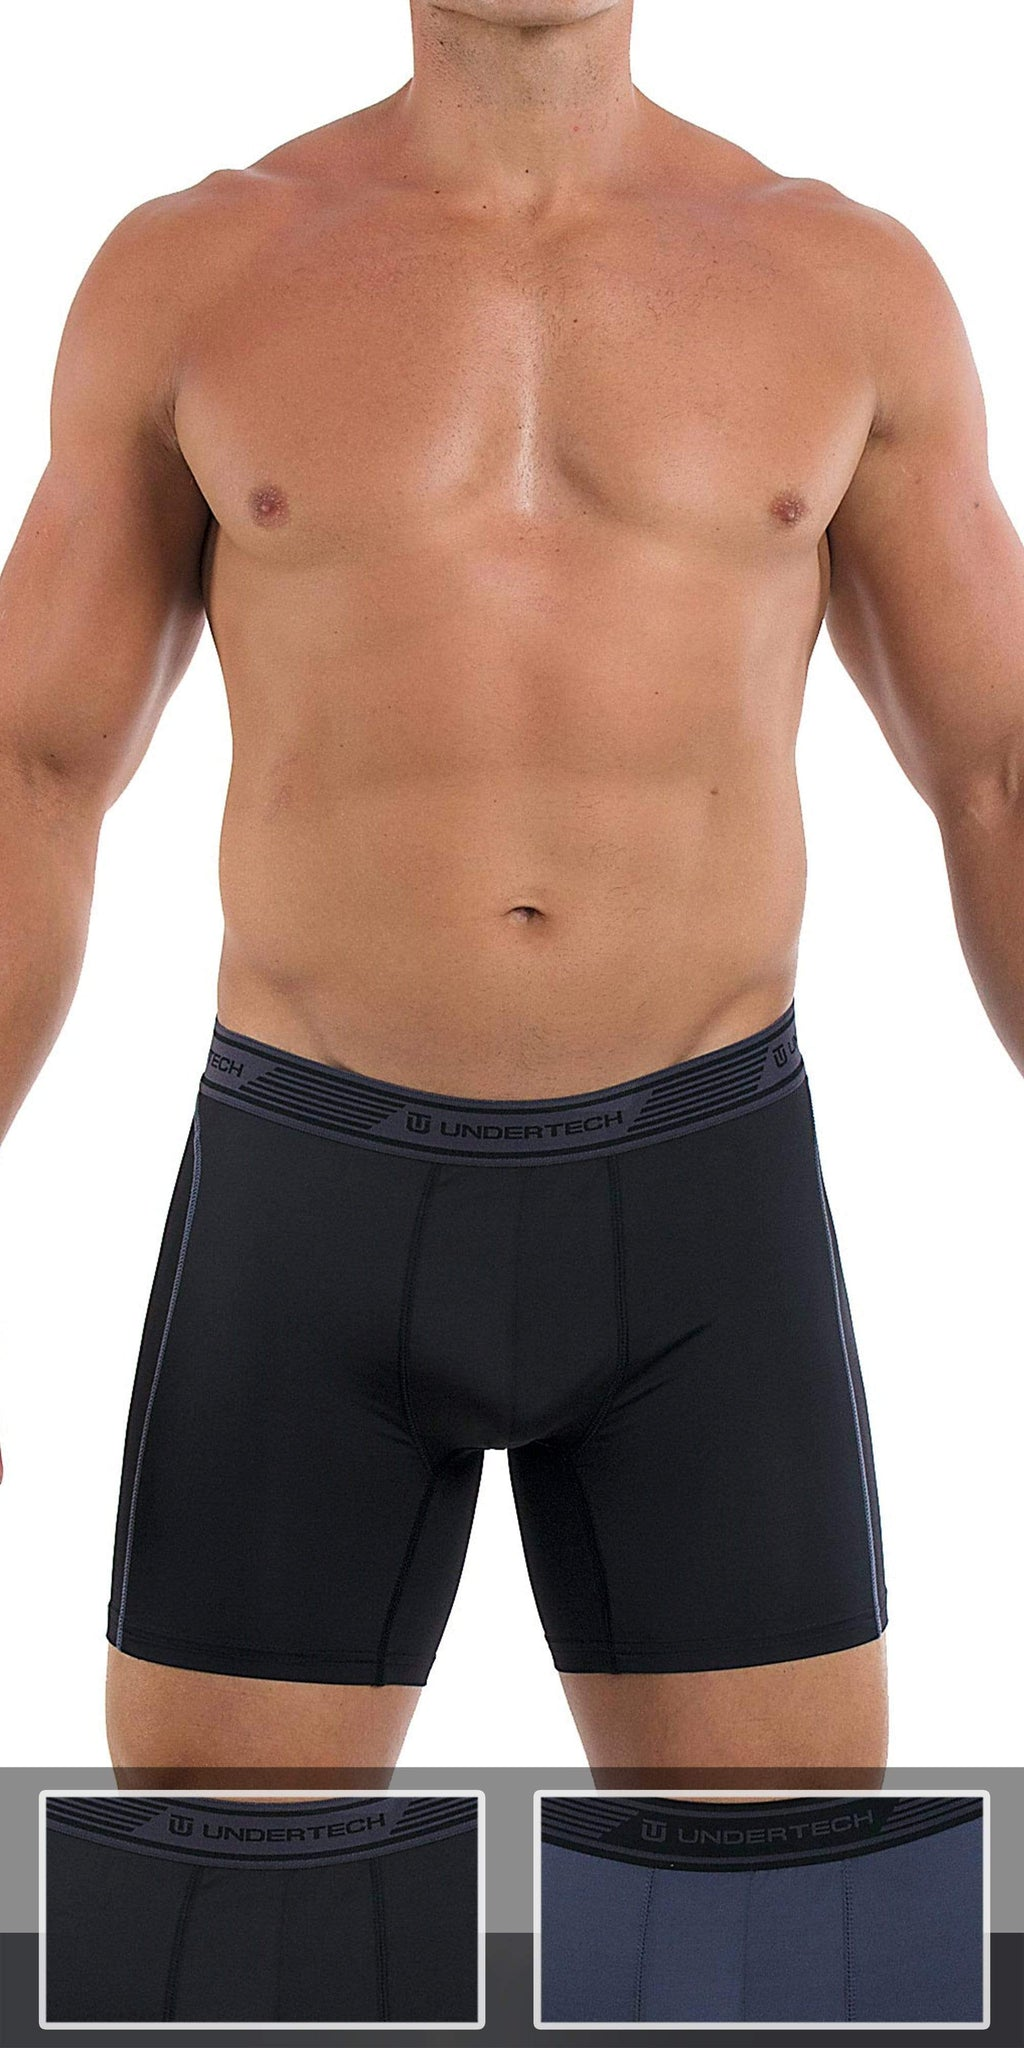 UNDERTECH 2-Pack Mesh Boxer Briefs In Black-Gray